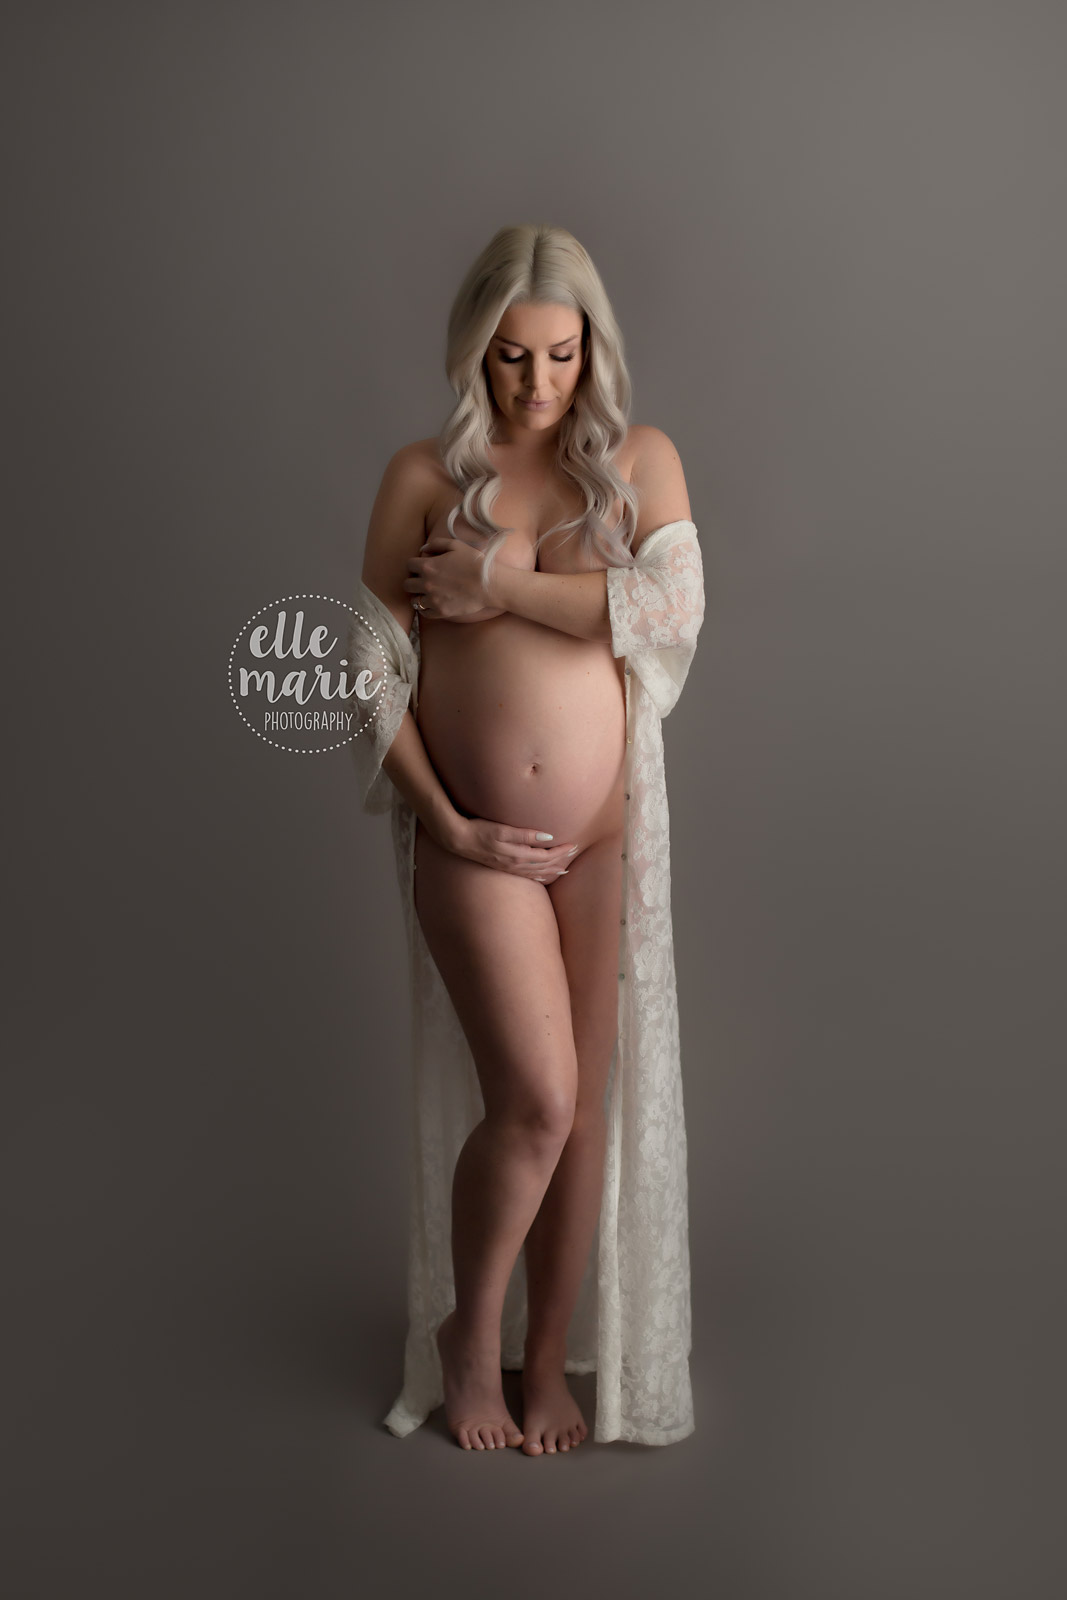 pregnant lady poses nude while hugging her belly